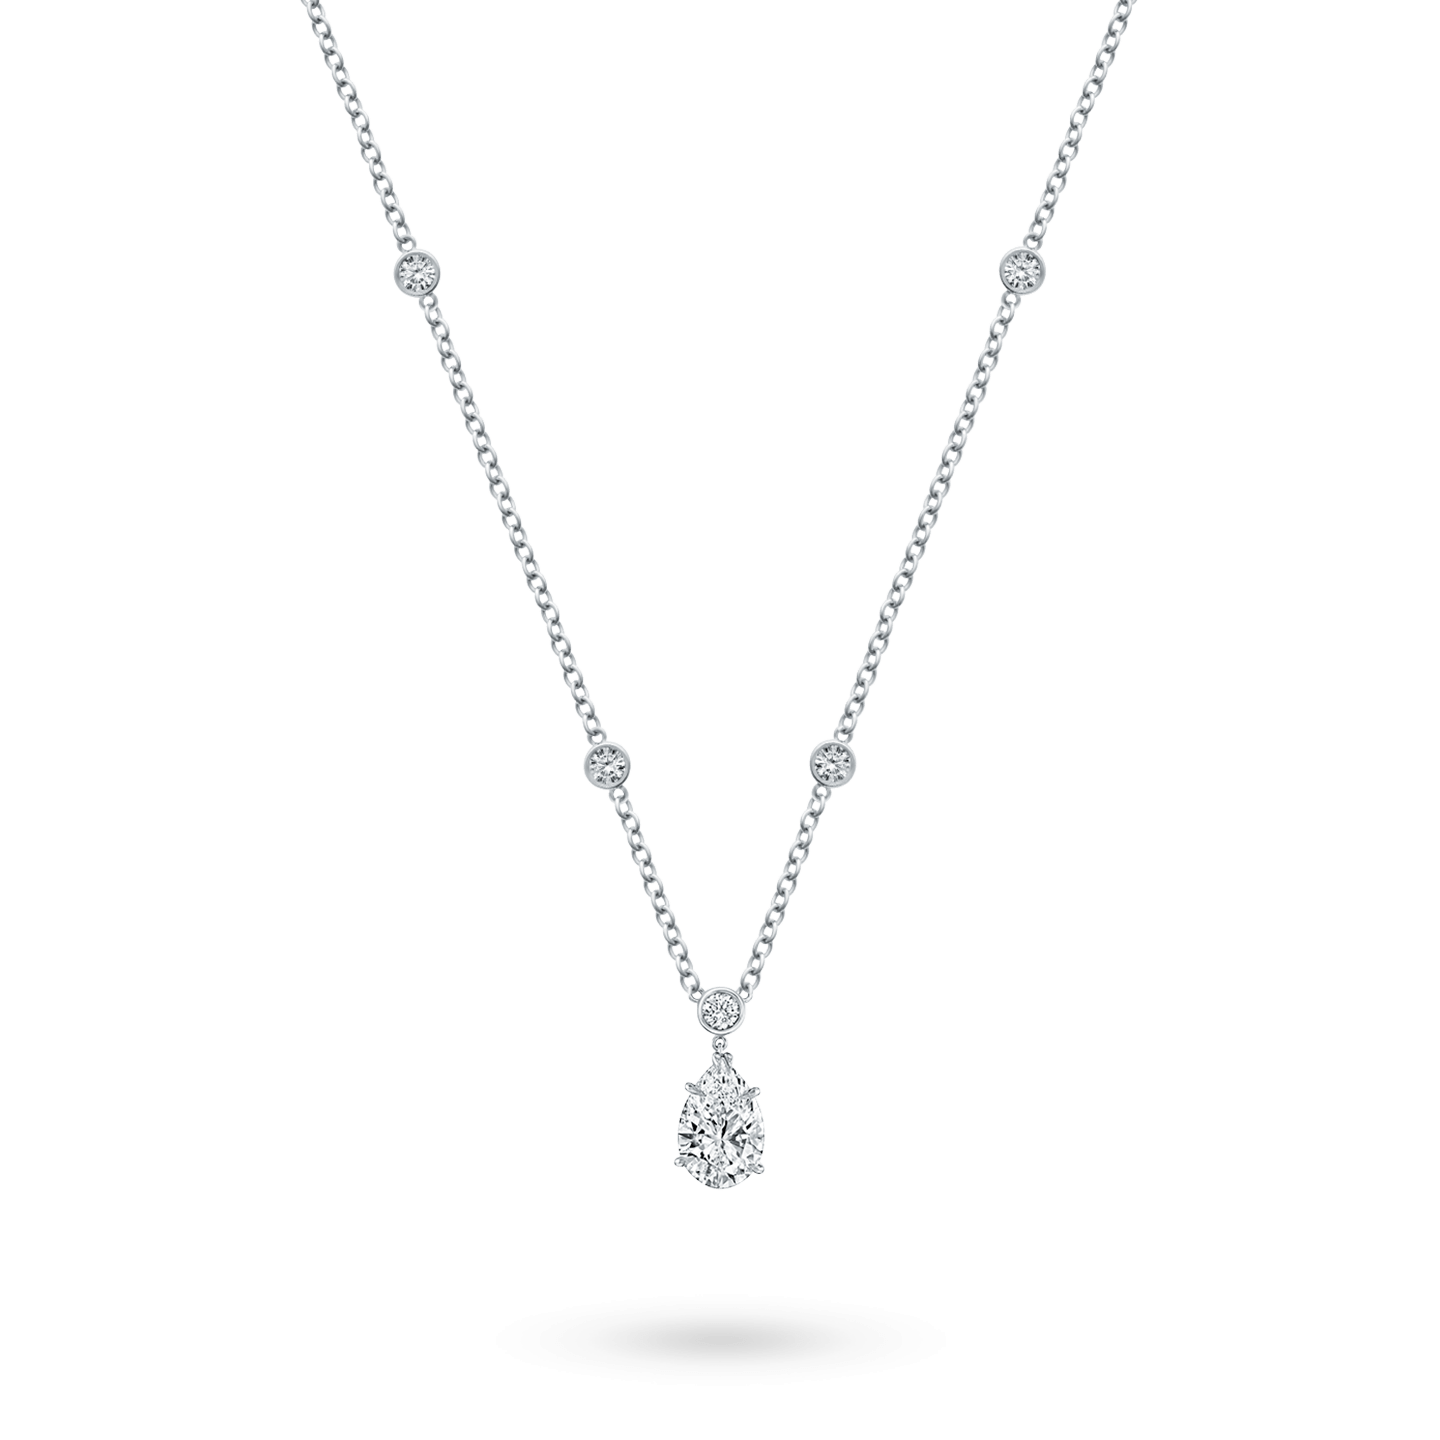 Pear-Shaped Diamond Pendant on a Rondelle Chain, Product Image 2